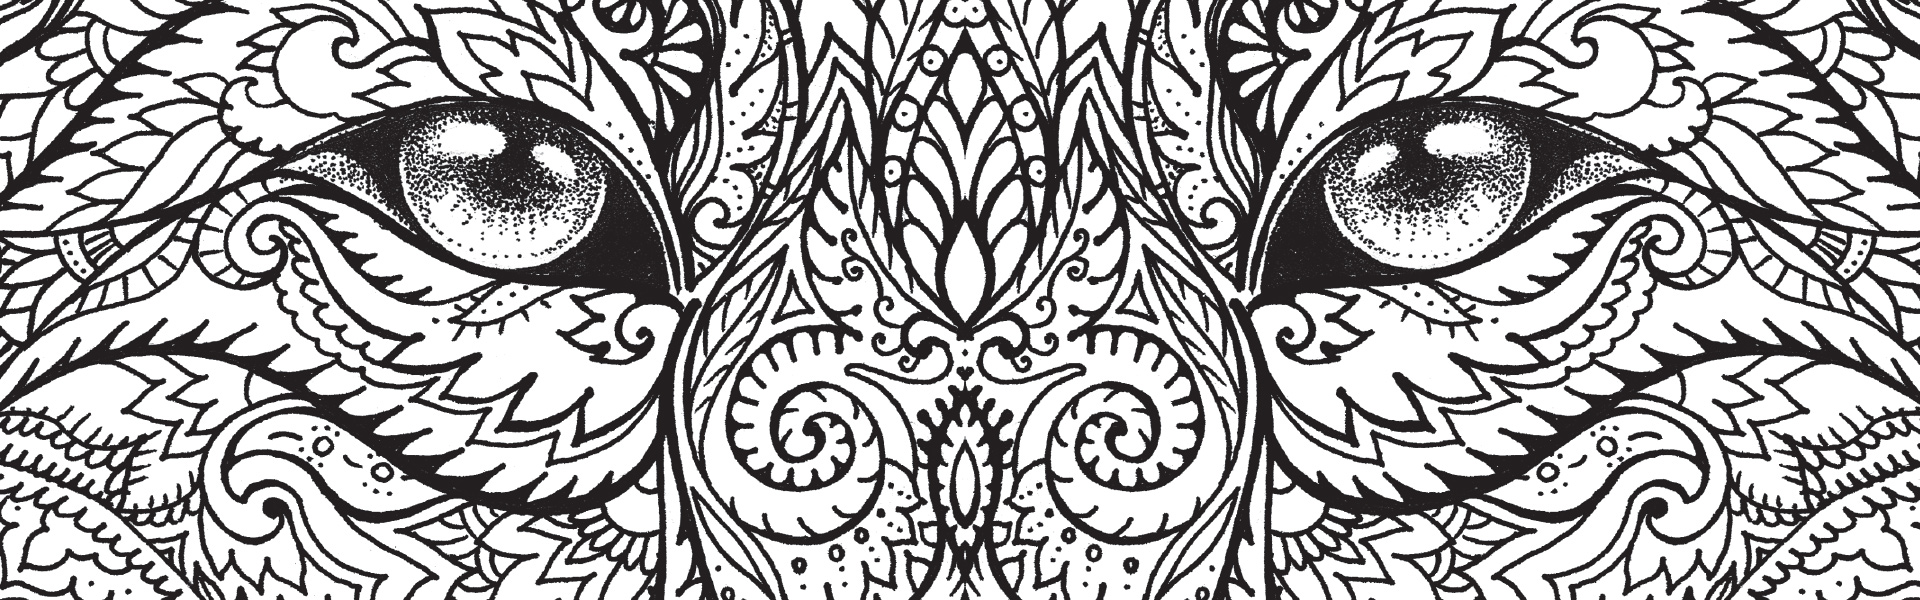 the macmillan jungle book colouring book free wolf pattern download - Colouring In Patterns